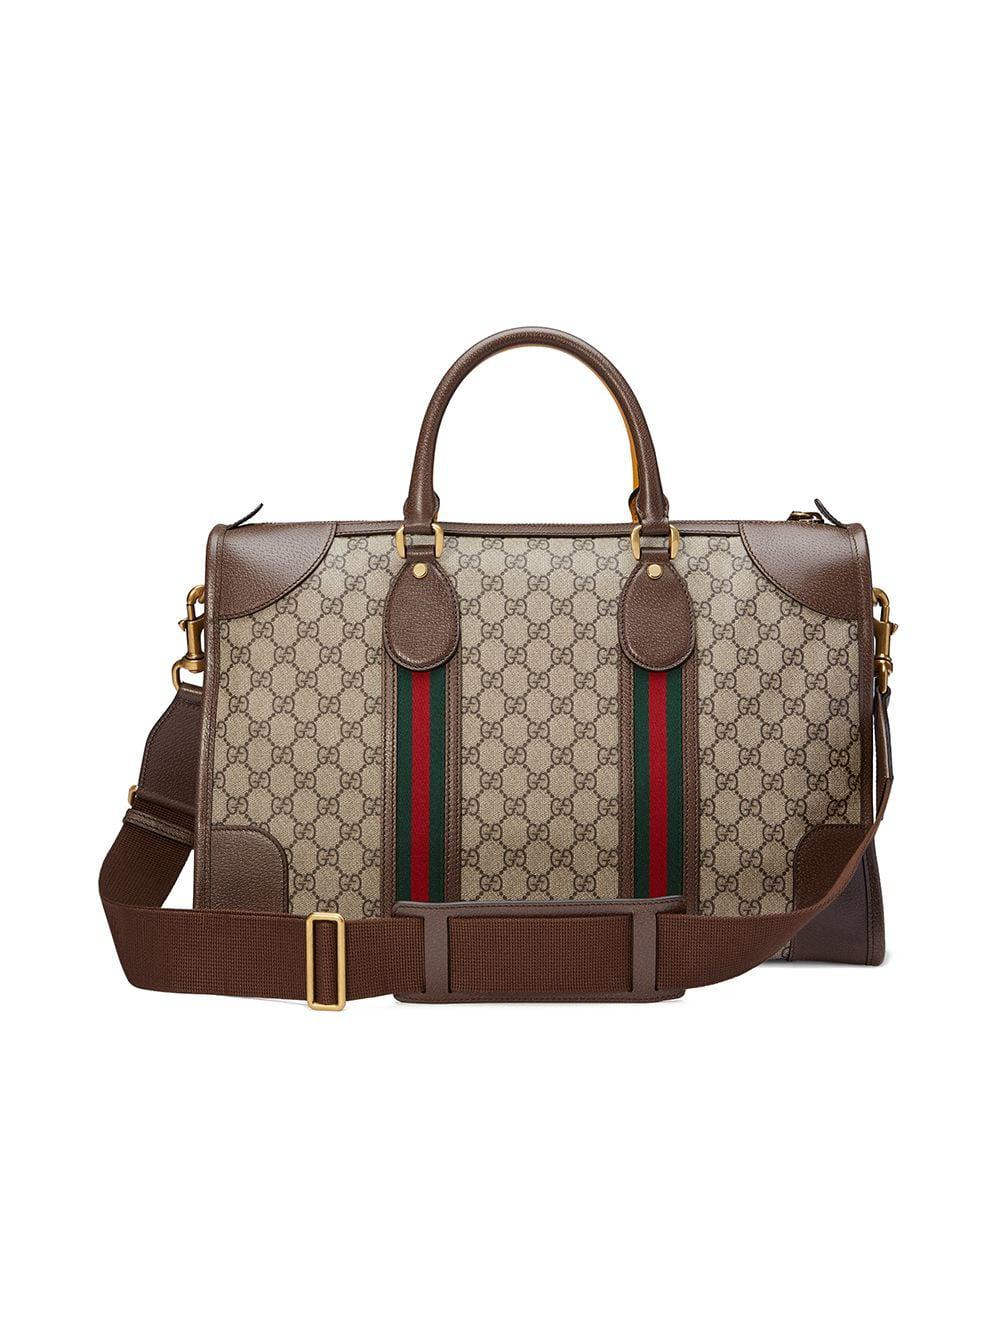 144ff9d9931 Gucci Soft GG Supreme Duffle Bag With Web in Brown - Lyst